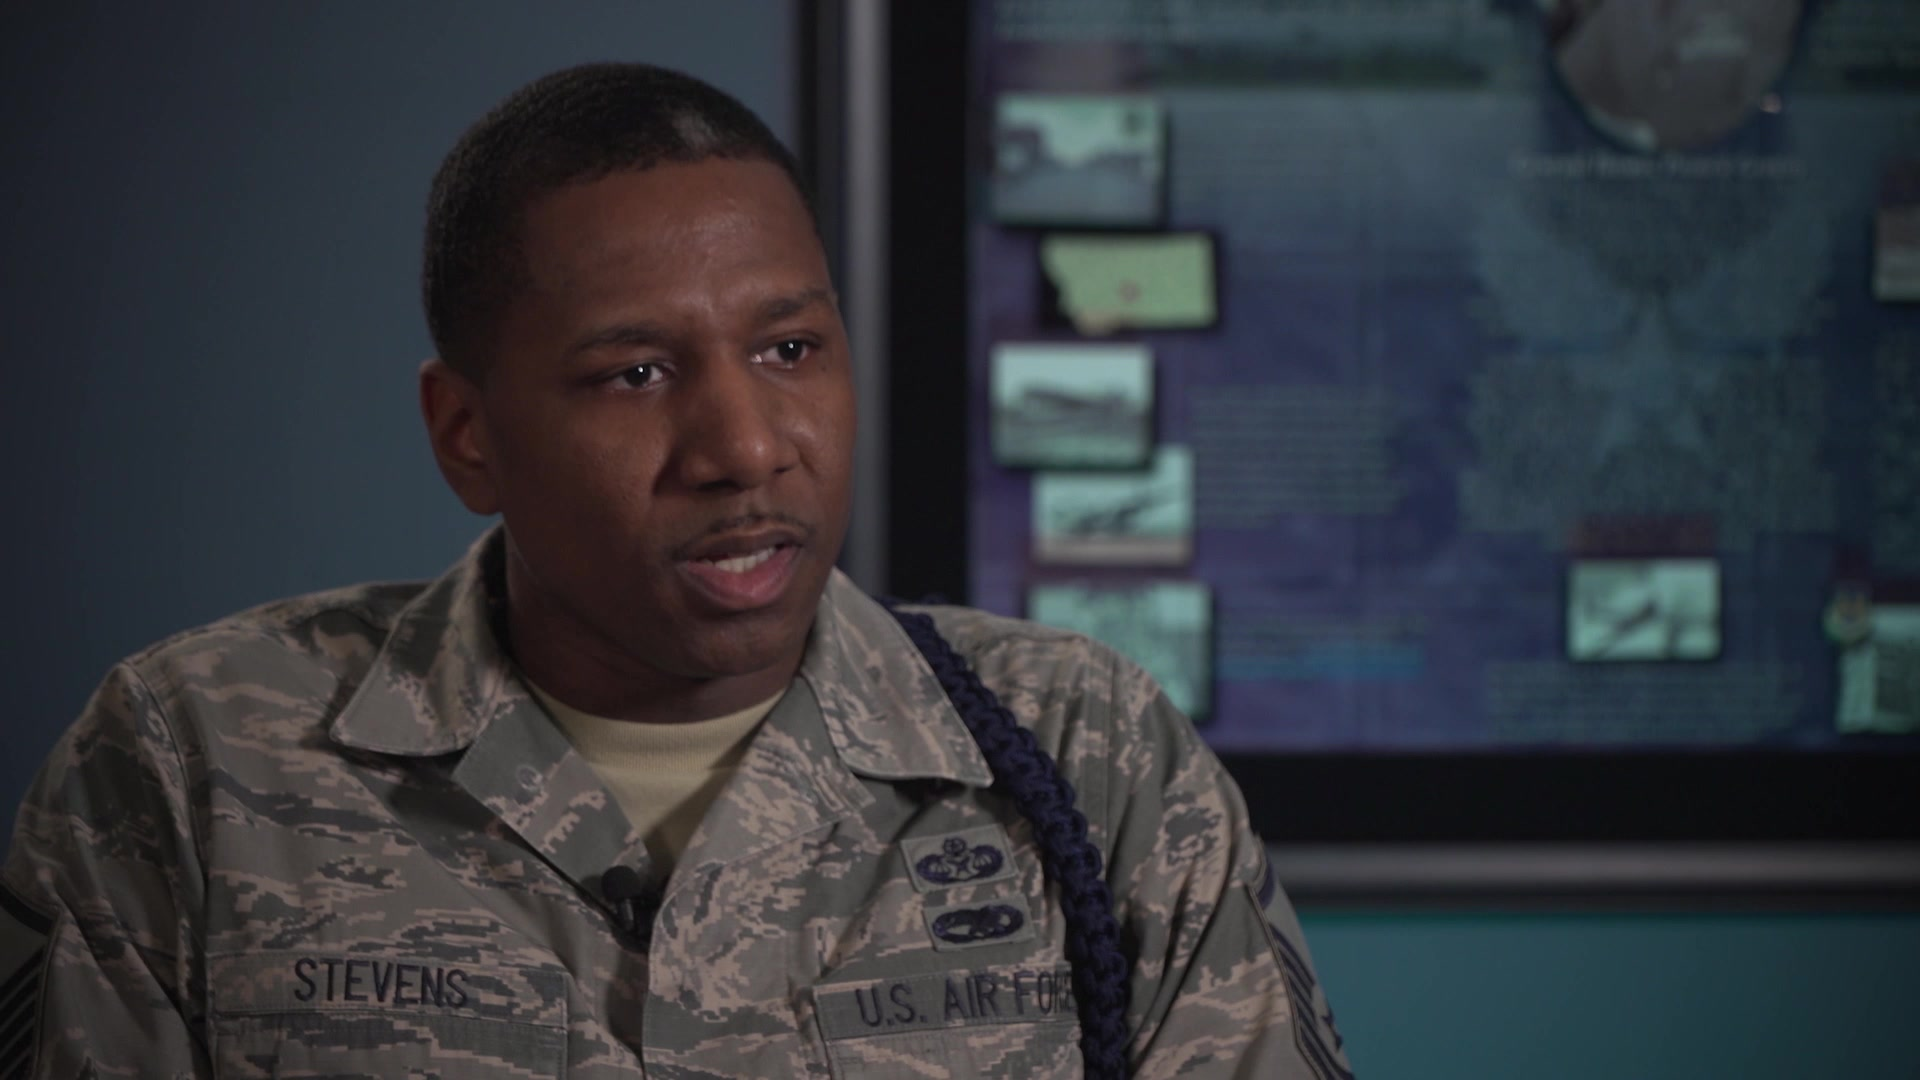 Through the telling of first-person stories, Air Force Materiel Command shares the impact of mentoring as part of the command's mentoring awareness efforts. This interview with Master Sgt. Michael Stevens, USAFSAM Military Training Flight Chief, shares his perspectives on the importance of mentorship.